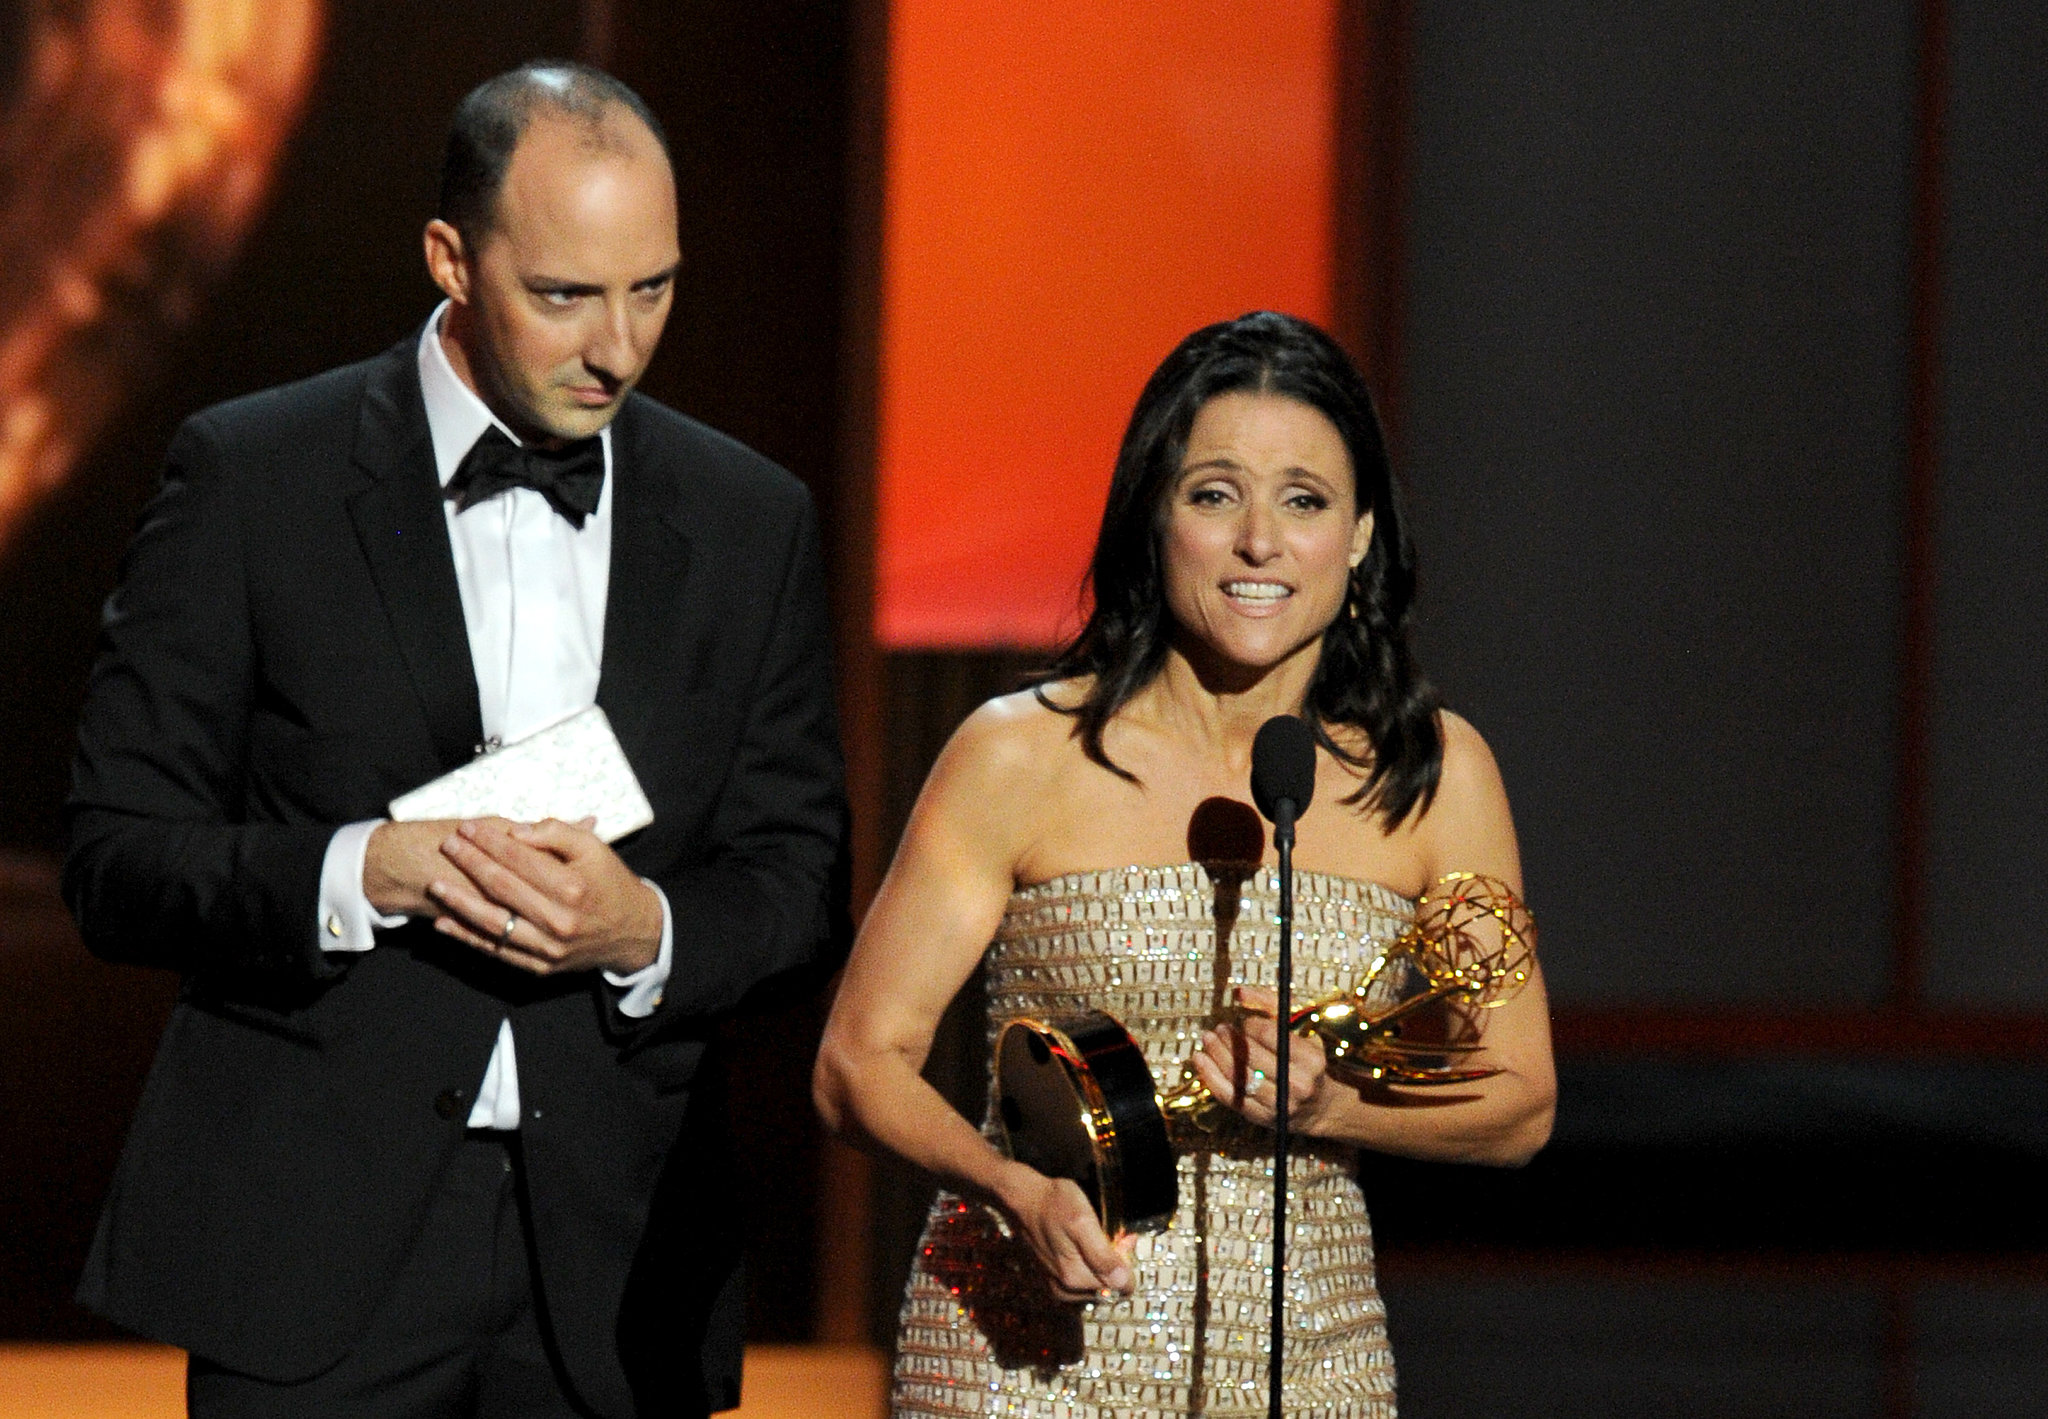 Tony Hale creeped behind Julia Louis-Dreyfus when she accepted her Emmy.